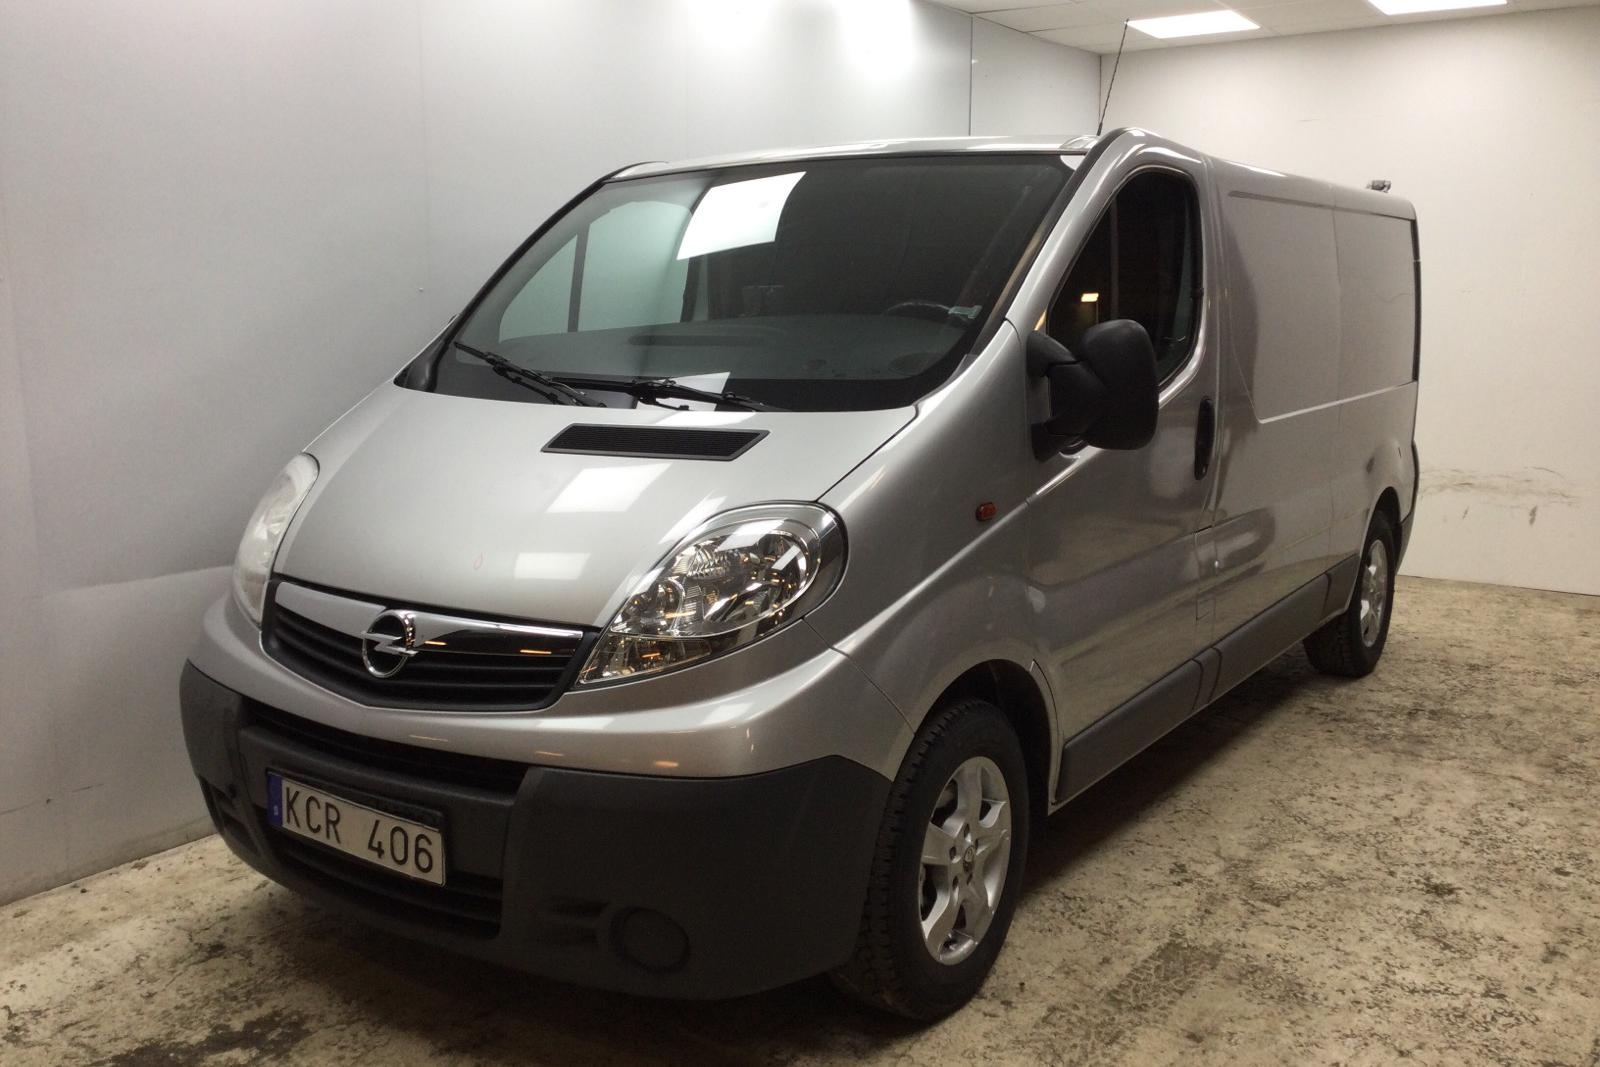 Opel Vivaro 2.5 DTI (146hk) - 122 870 km - Manual - gray - 2010